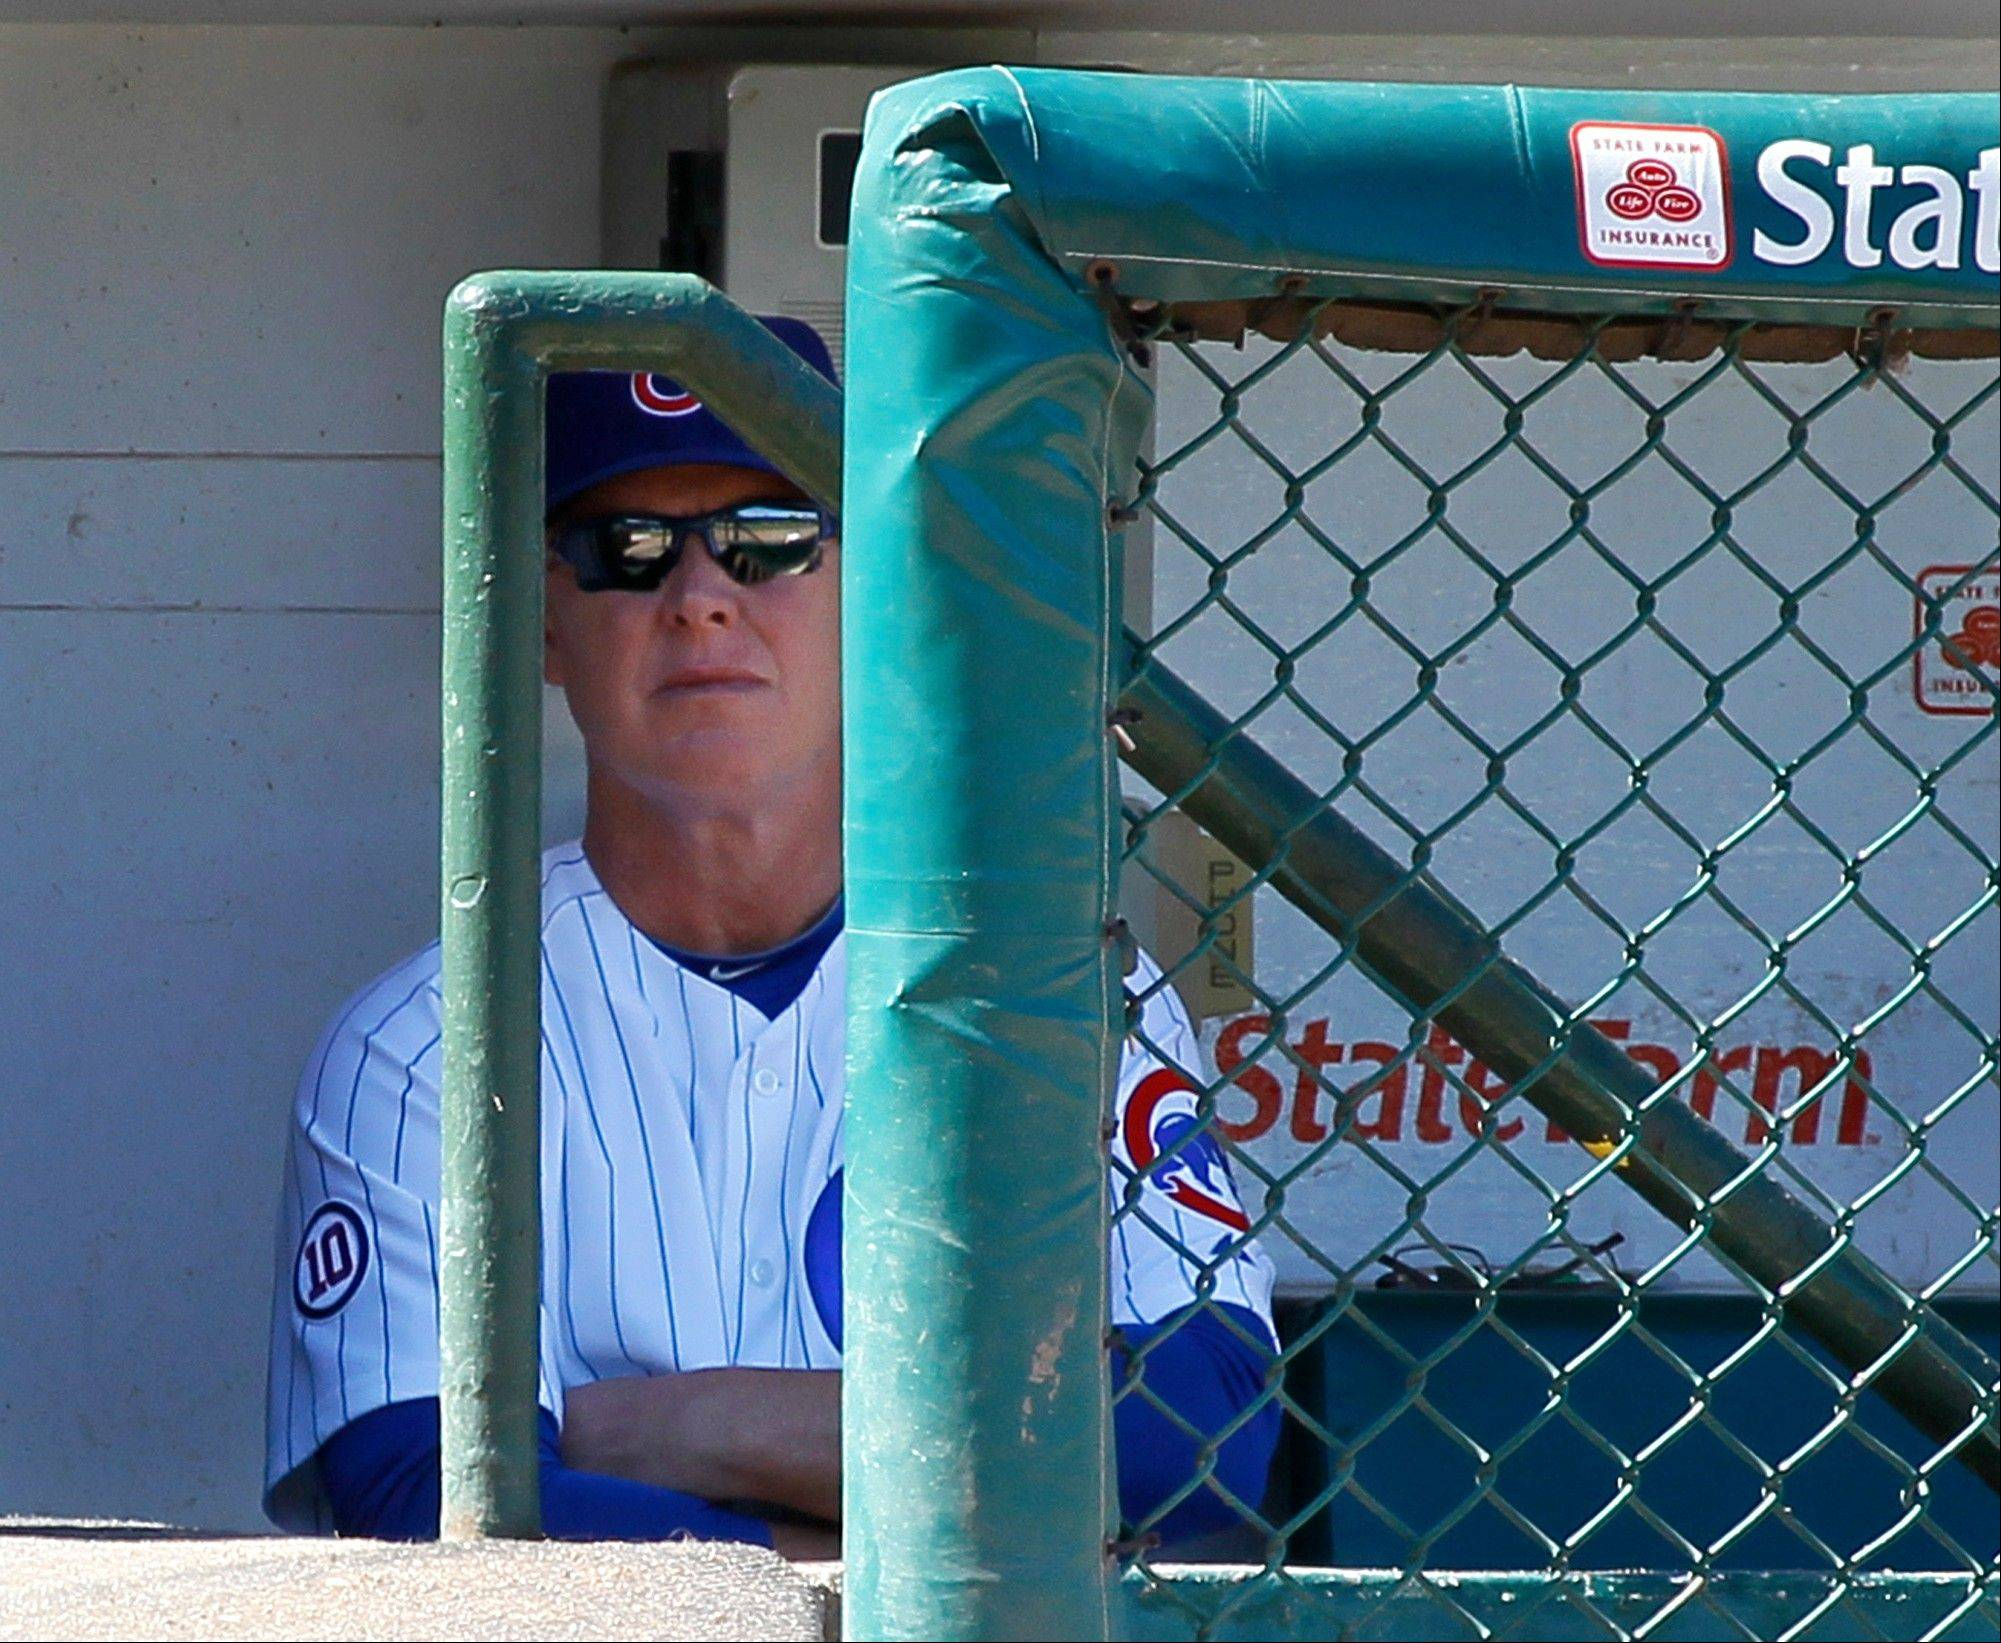 Quade expecting to return as Cubs manager